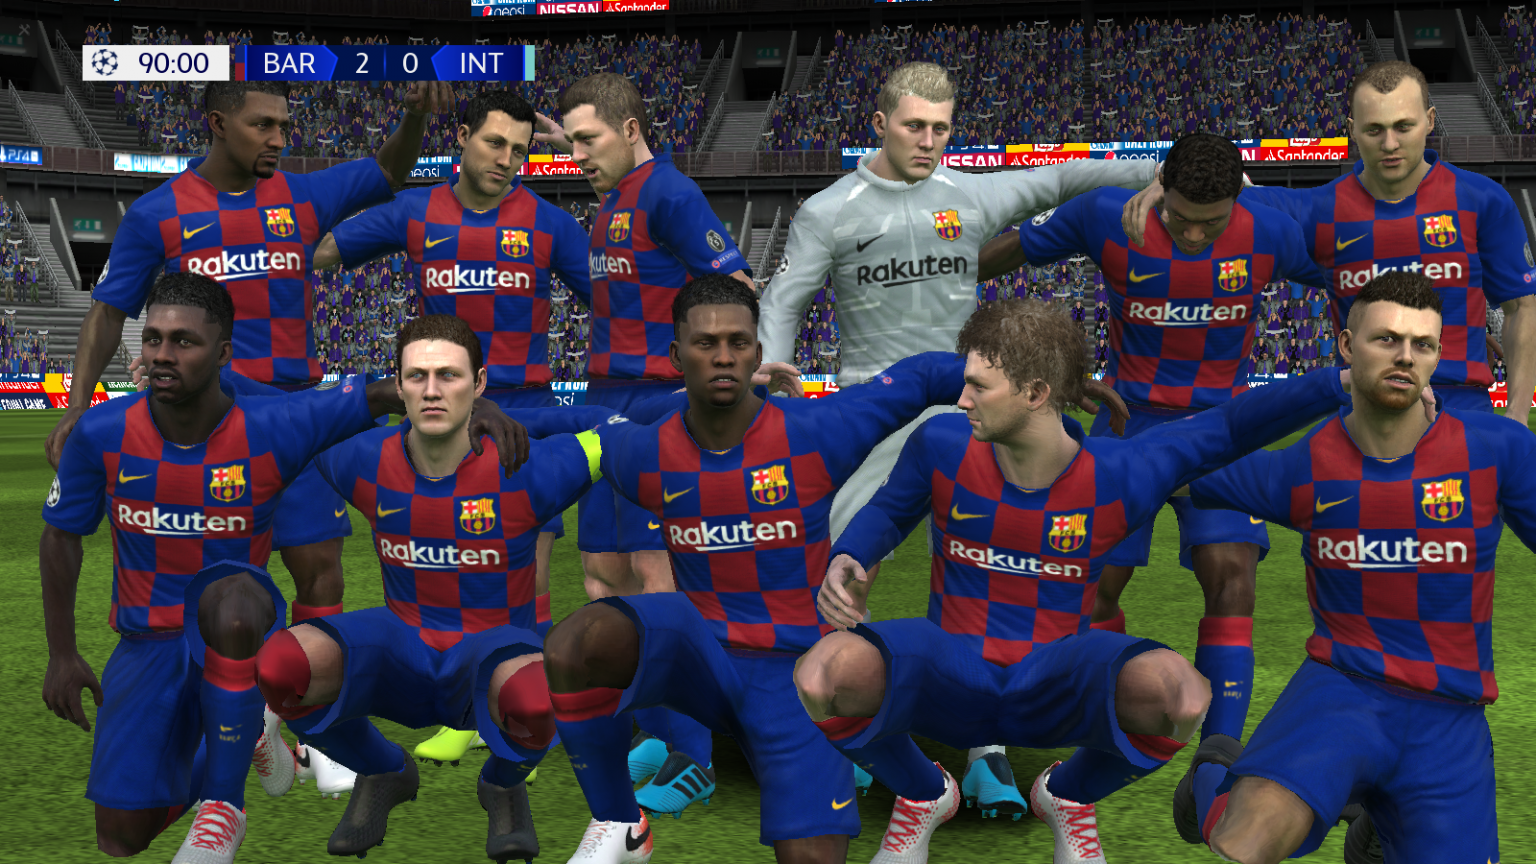 free download fc barcelona image fifa manager season 2020 mod for fifa manager 1600x900 for your desktop mobile tablet explore 31 fc barcelona 2020 wallpapers fc barcelona 2020 wallpapers free download fc barcelona image fifa